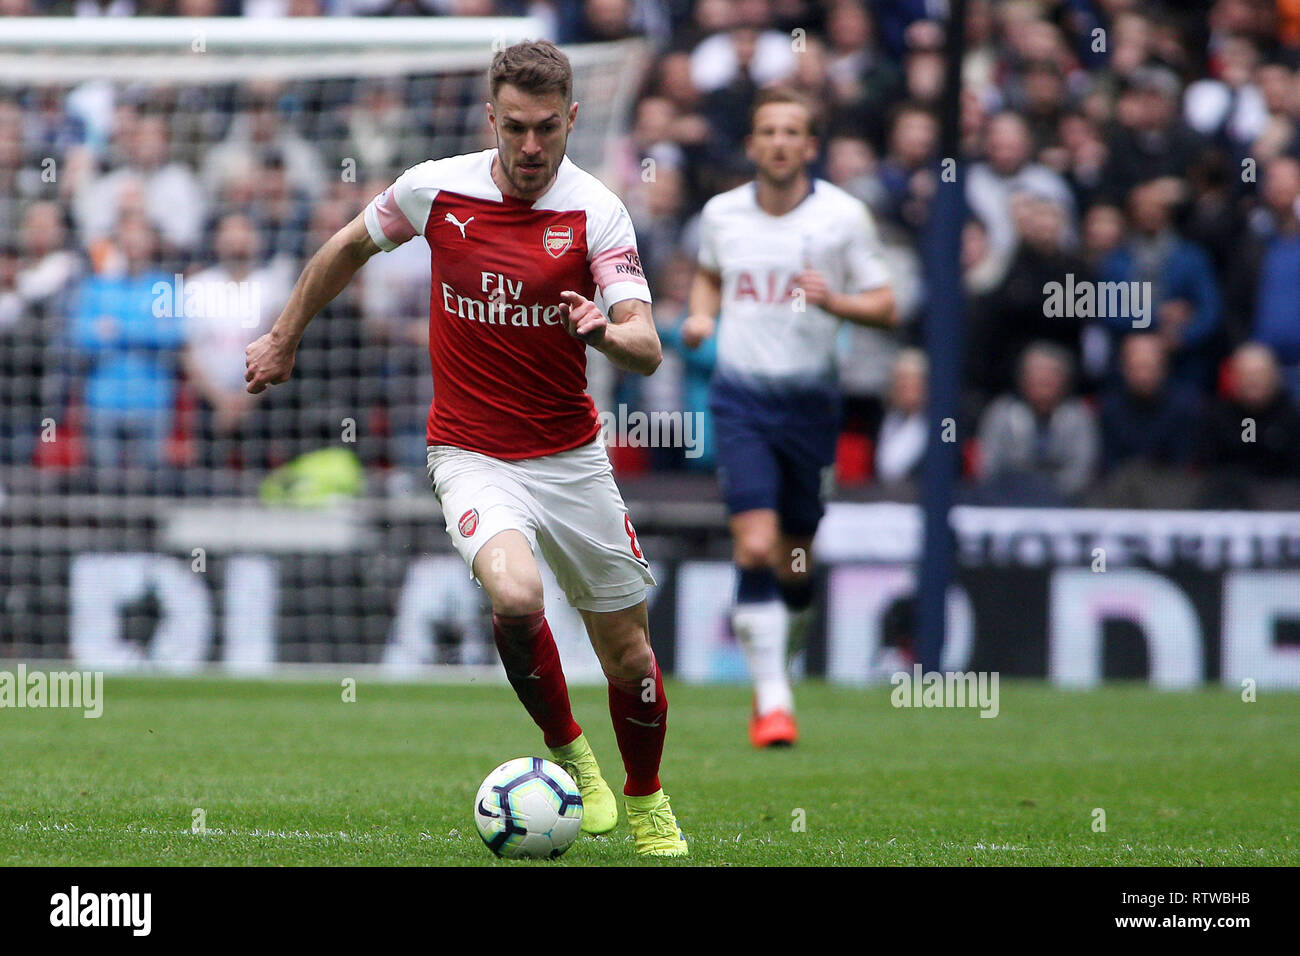 London Uk 2nd March 2019 Aaron Ramsey Of Arsenal In Action Epl Premier League Match Tottenham Hotspur V Arsenal At Wembley Stadium In London On Saturday 2nd March 2019 This Image May